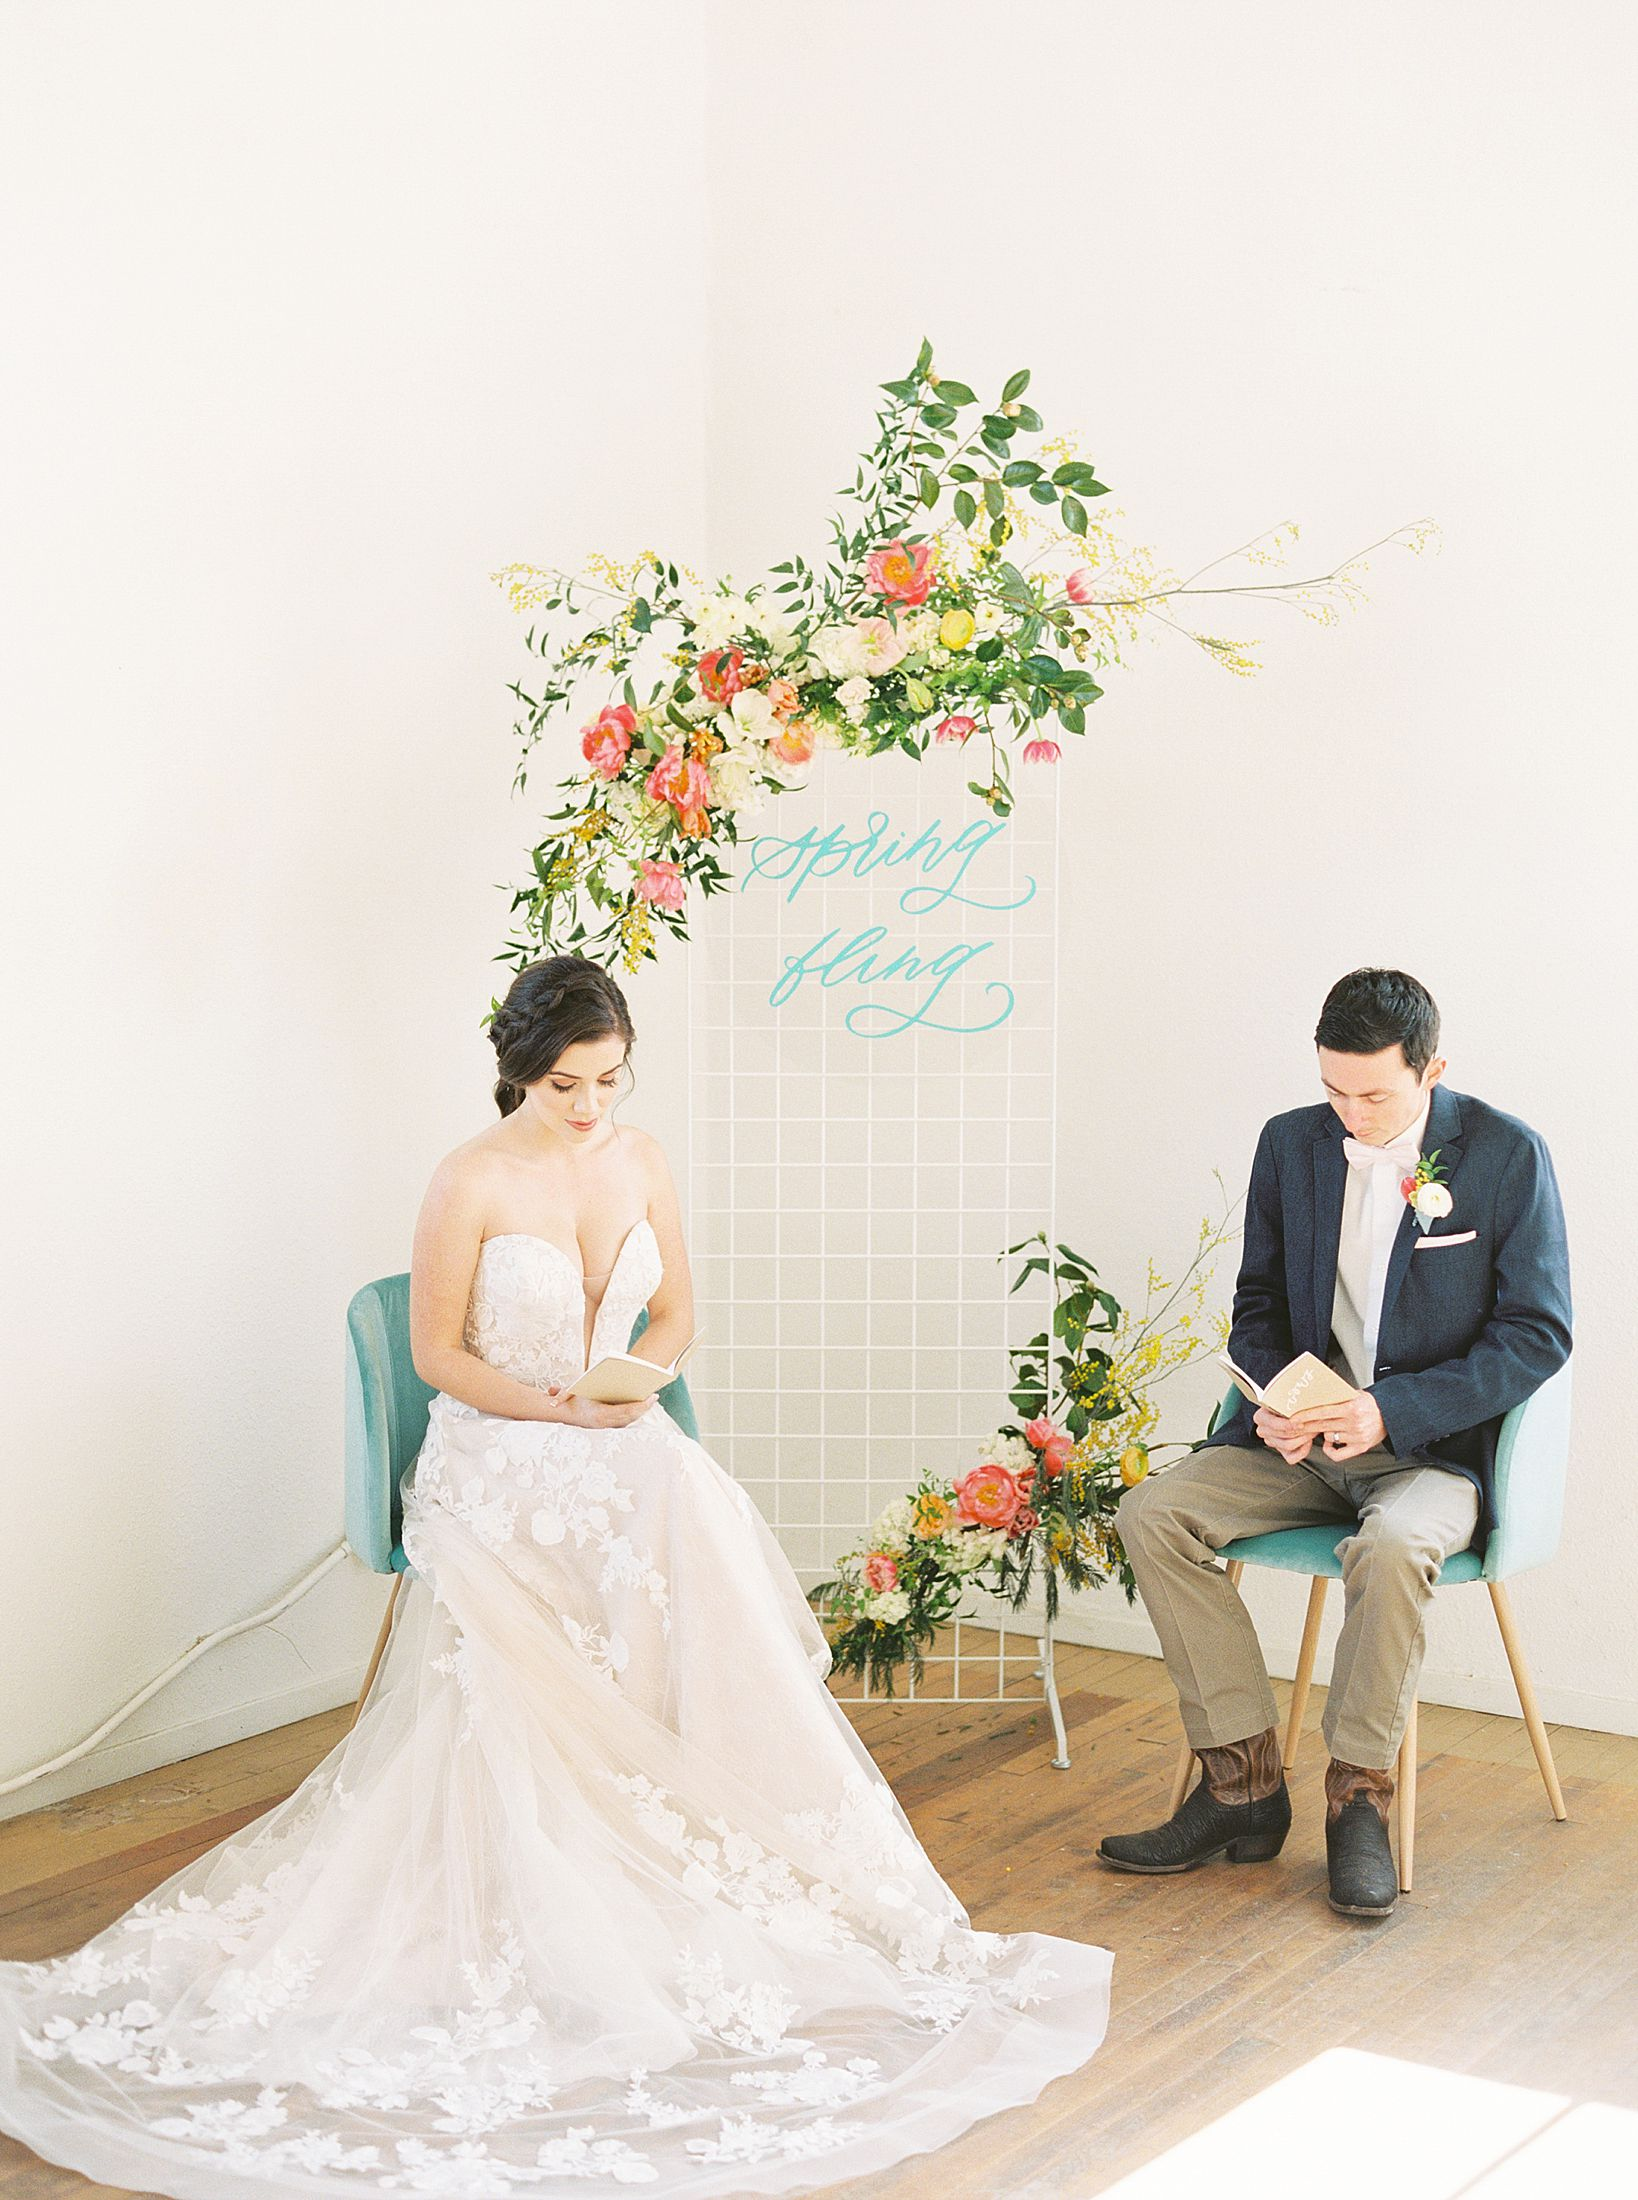 Bay Area Spring Wedding Inspiration - Ashley Baumgartner - Inspired By This - Party Crush Studio and Lens of Lenox Videography - Bay Area Wedding Photography_0066.jpg